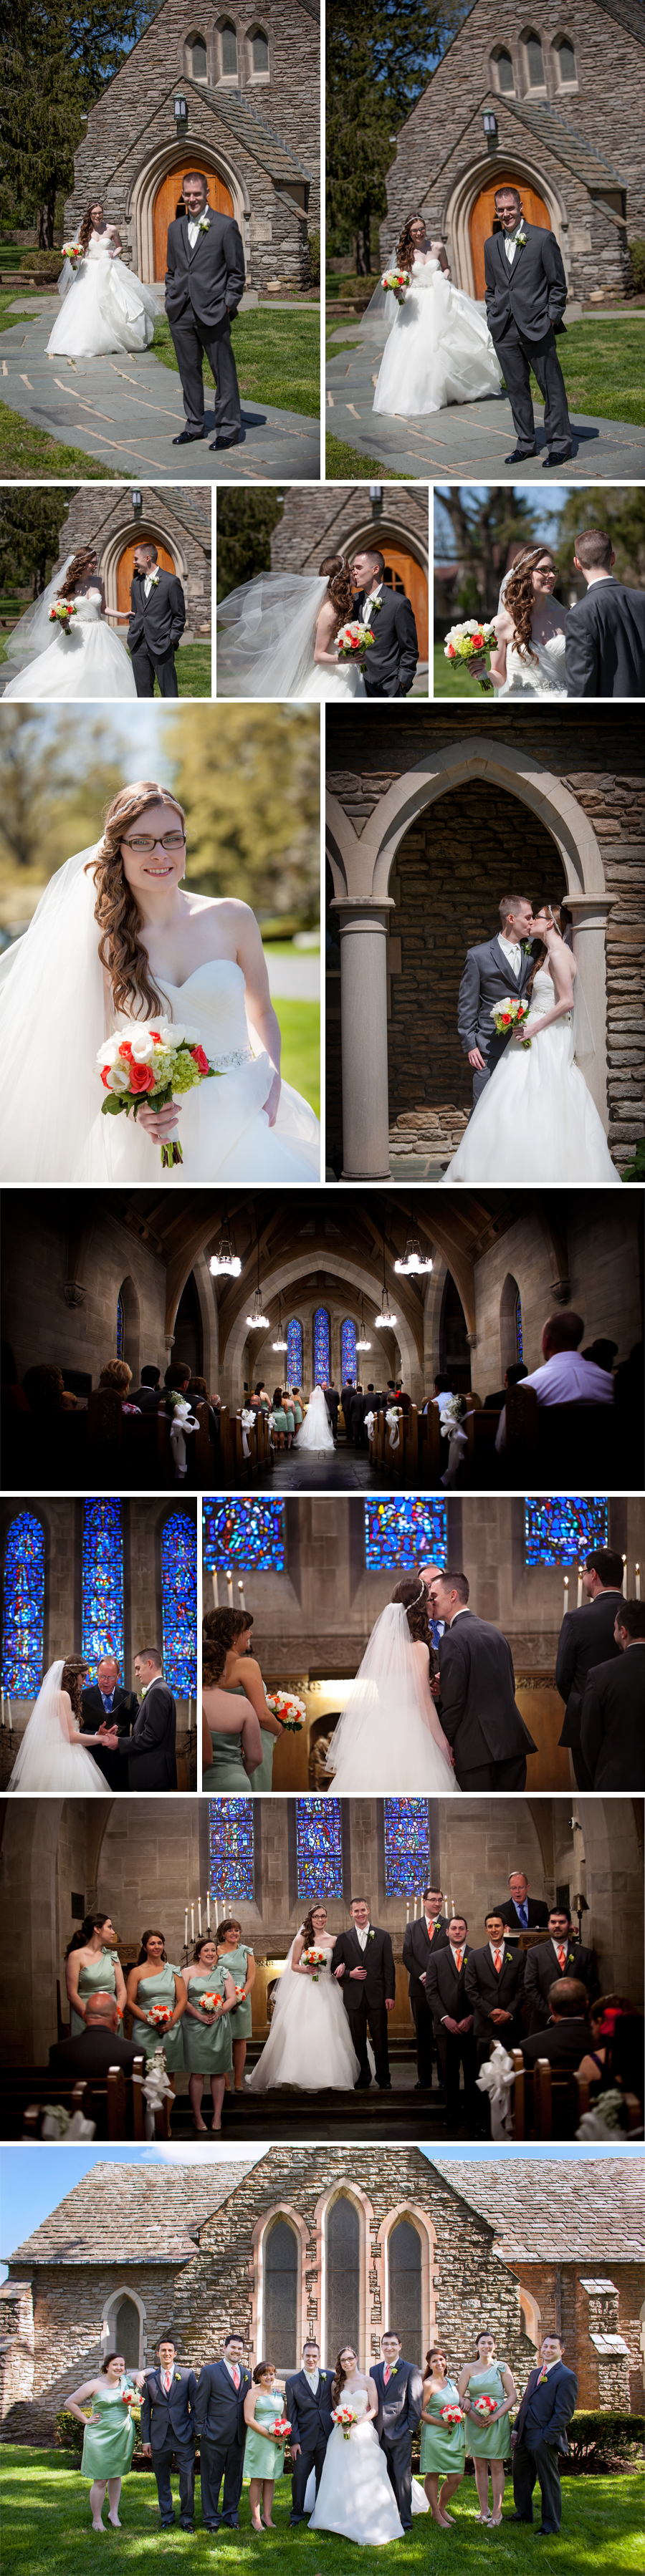 It was a beautiful Louisville wedding ceremony at Duncan Memorial Chapel in Crestwood, KY.